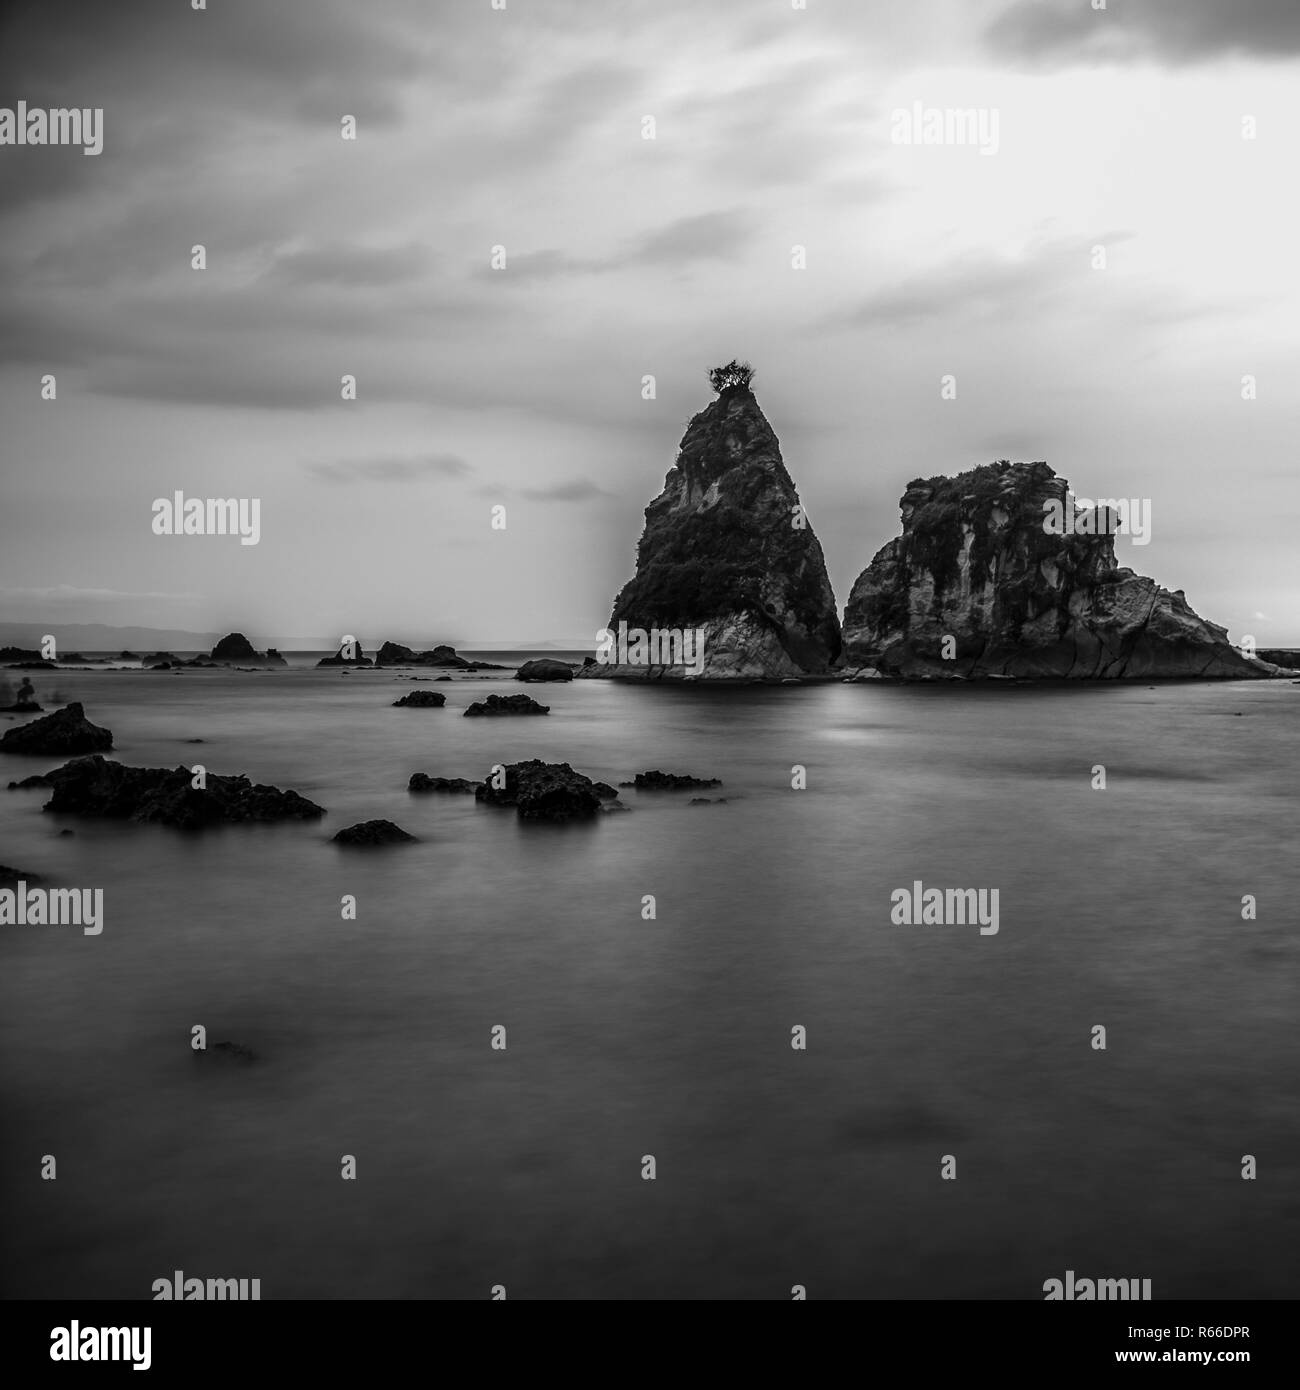 Sawarna Beach is one of the most isolated and beautiful beach in Indonesia. - Stock Image